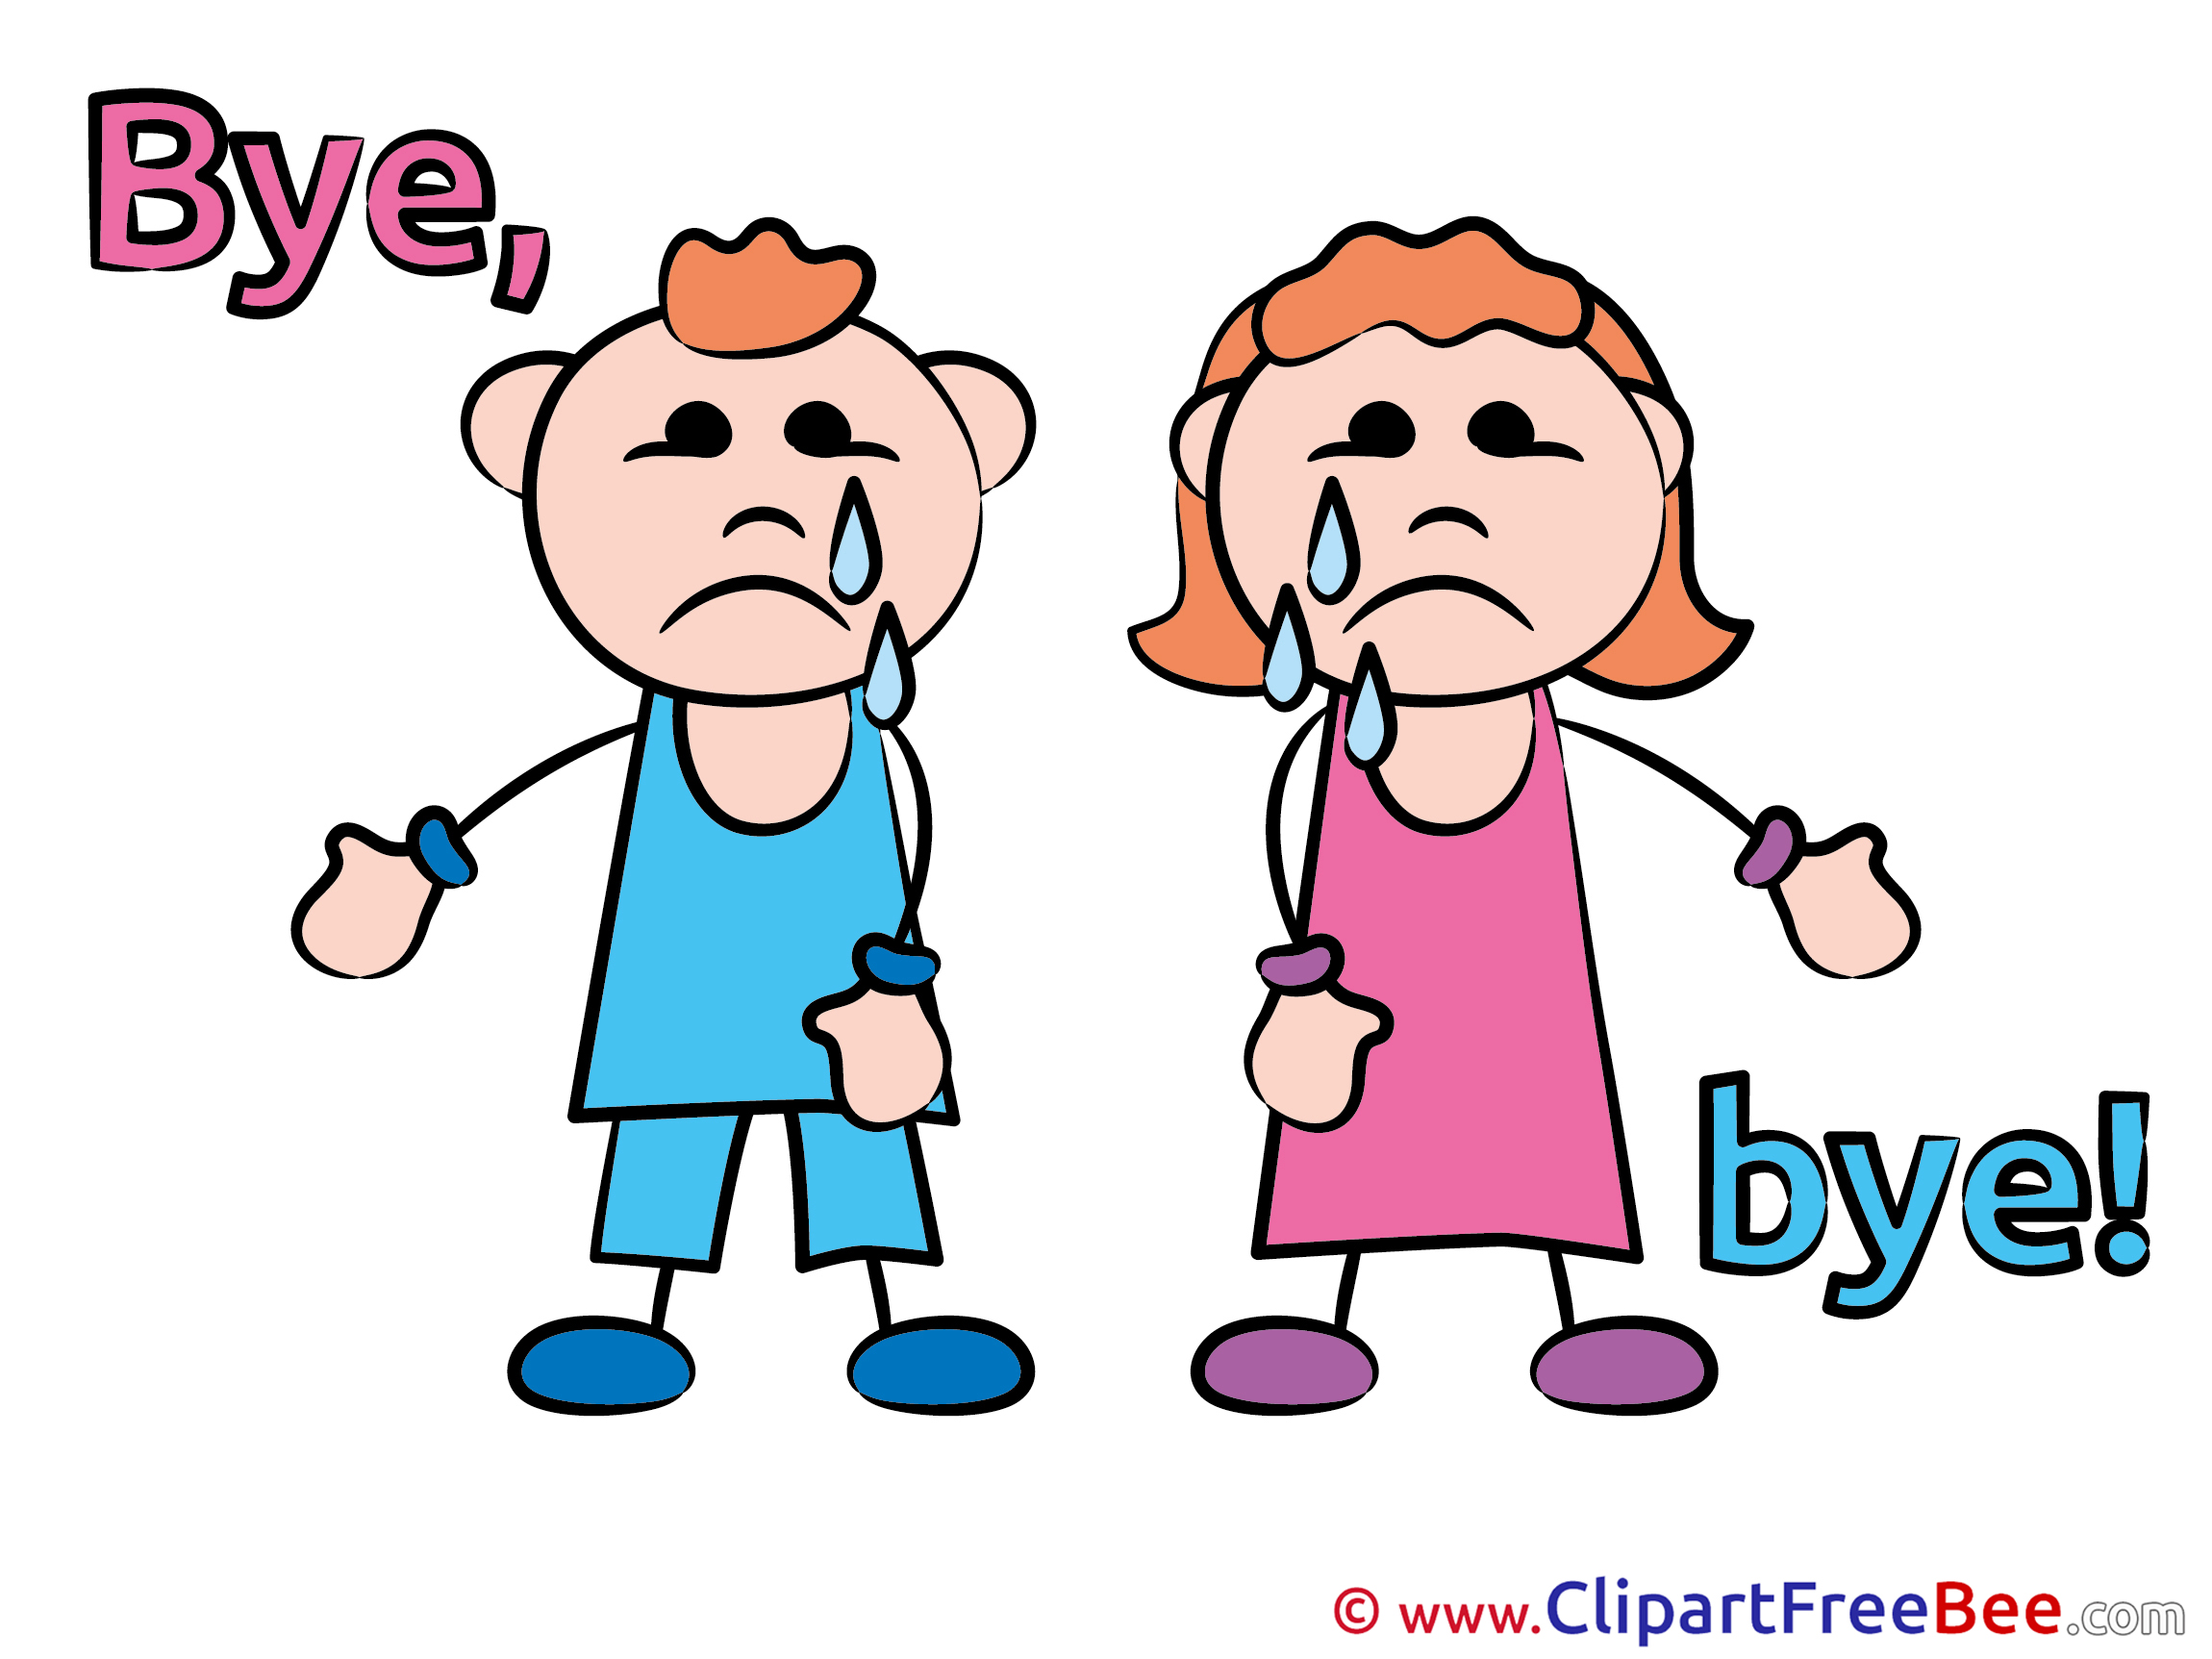 children download clipart goodbye cliparts rh clipartfreebee com goodbye clip art free saying goodbye clipart